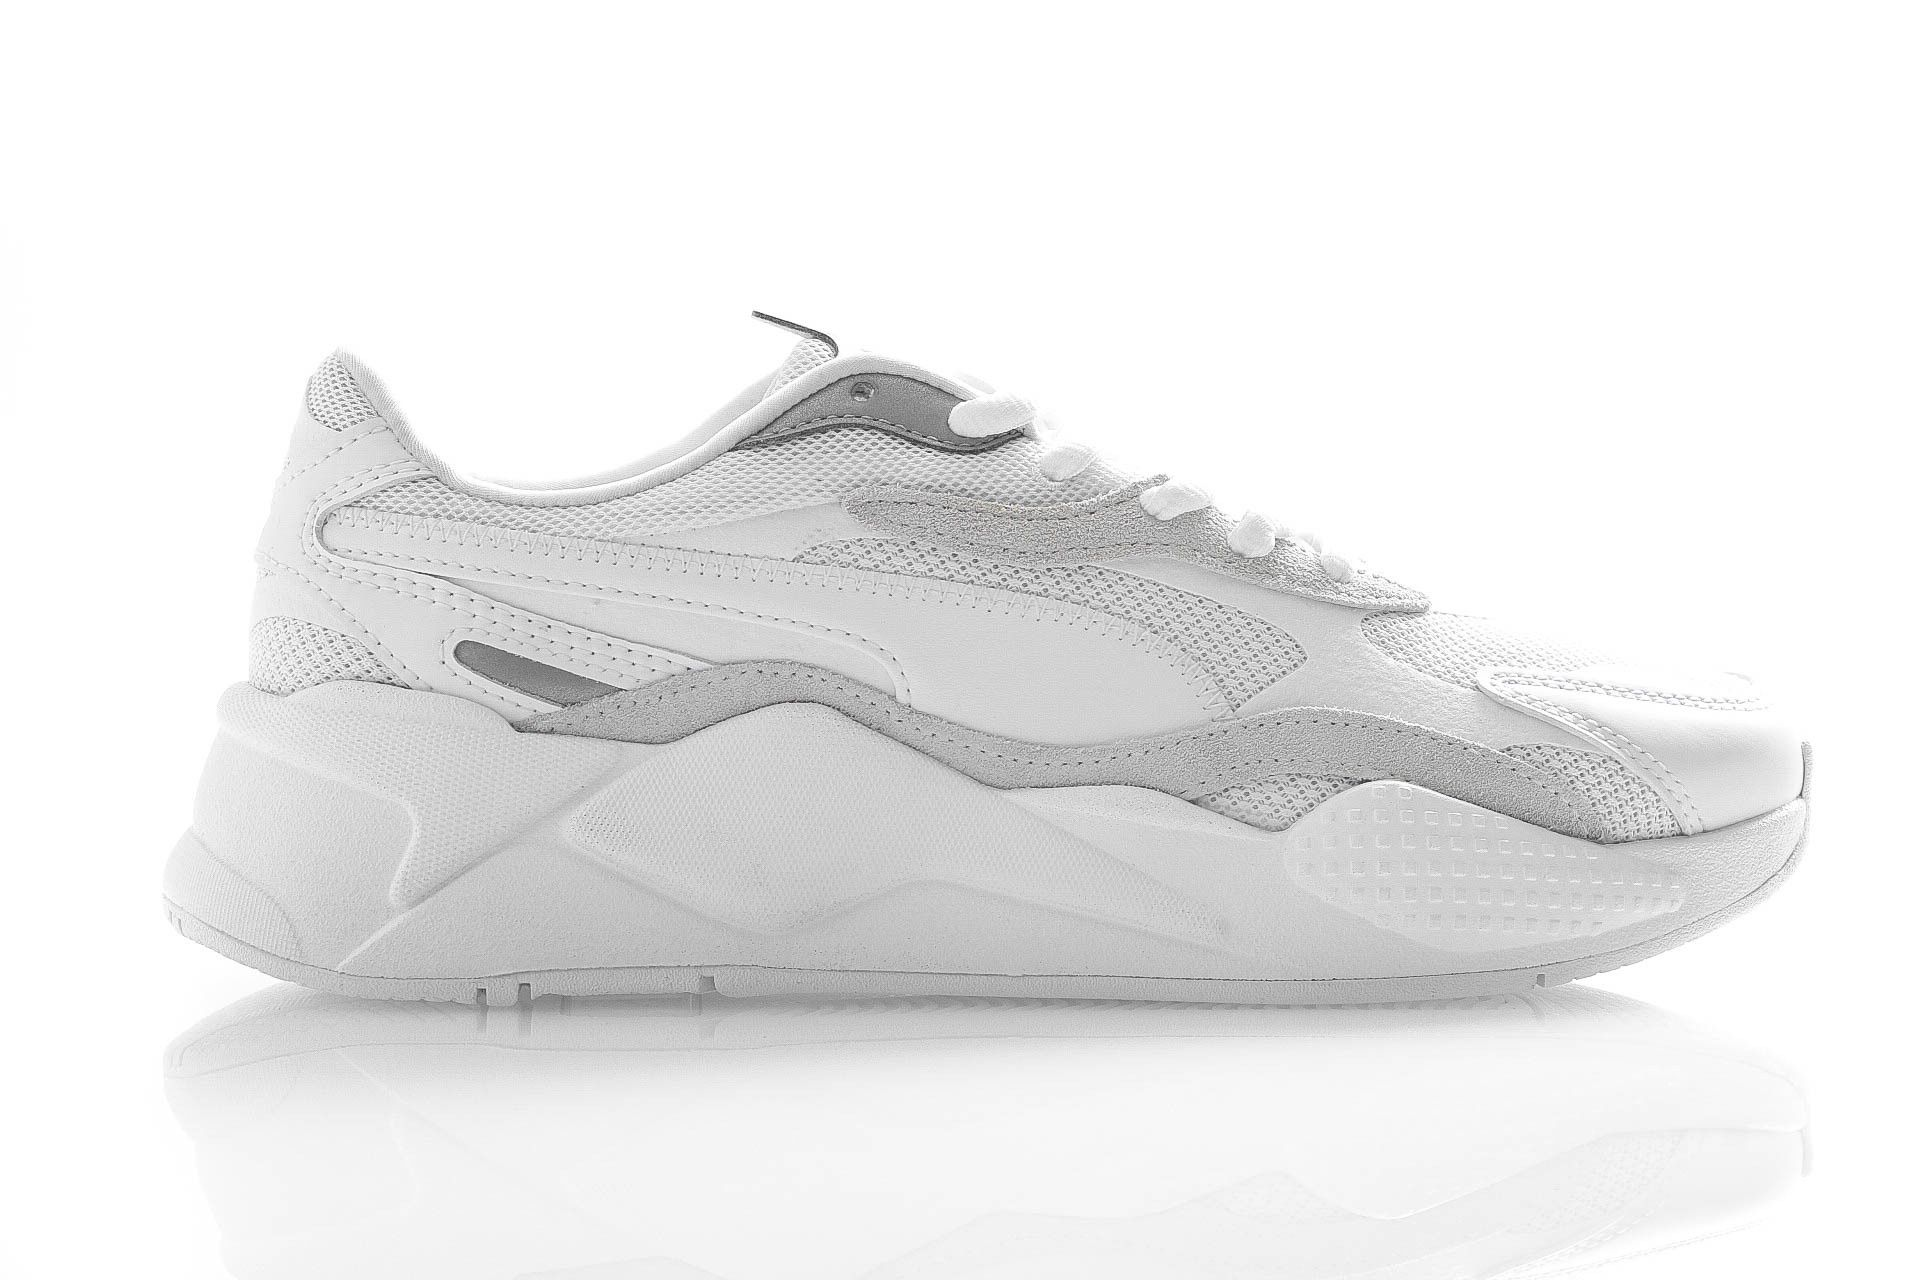 Afbeelding van Puma Sneakers Rs-X³ Puzzle Puma White-Puma Silver 371570 03